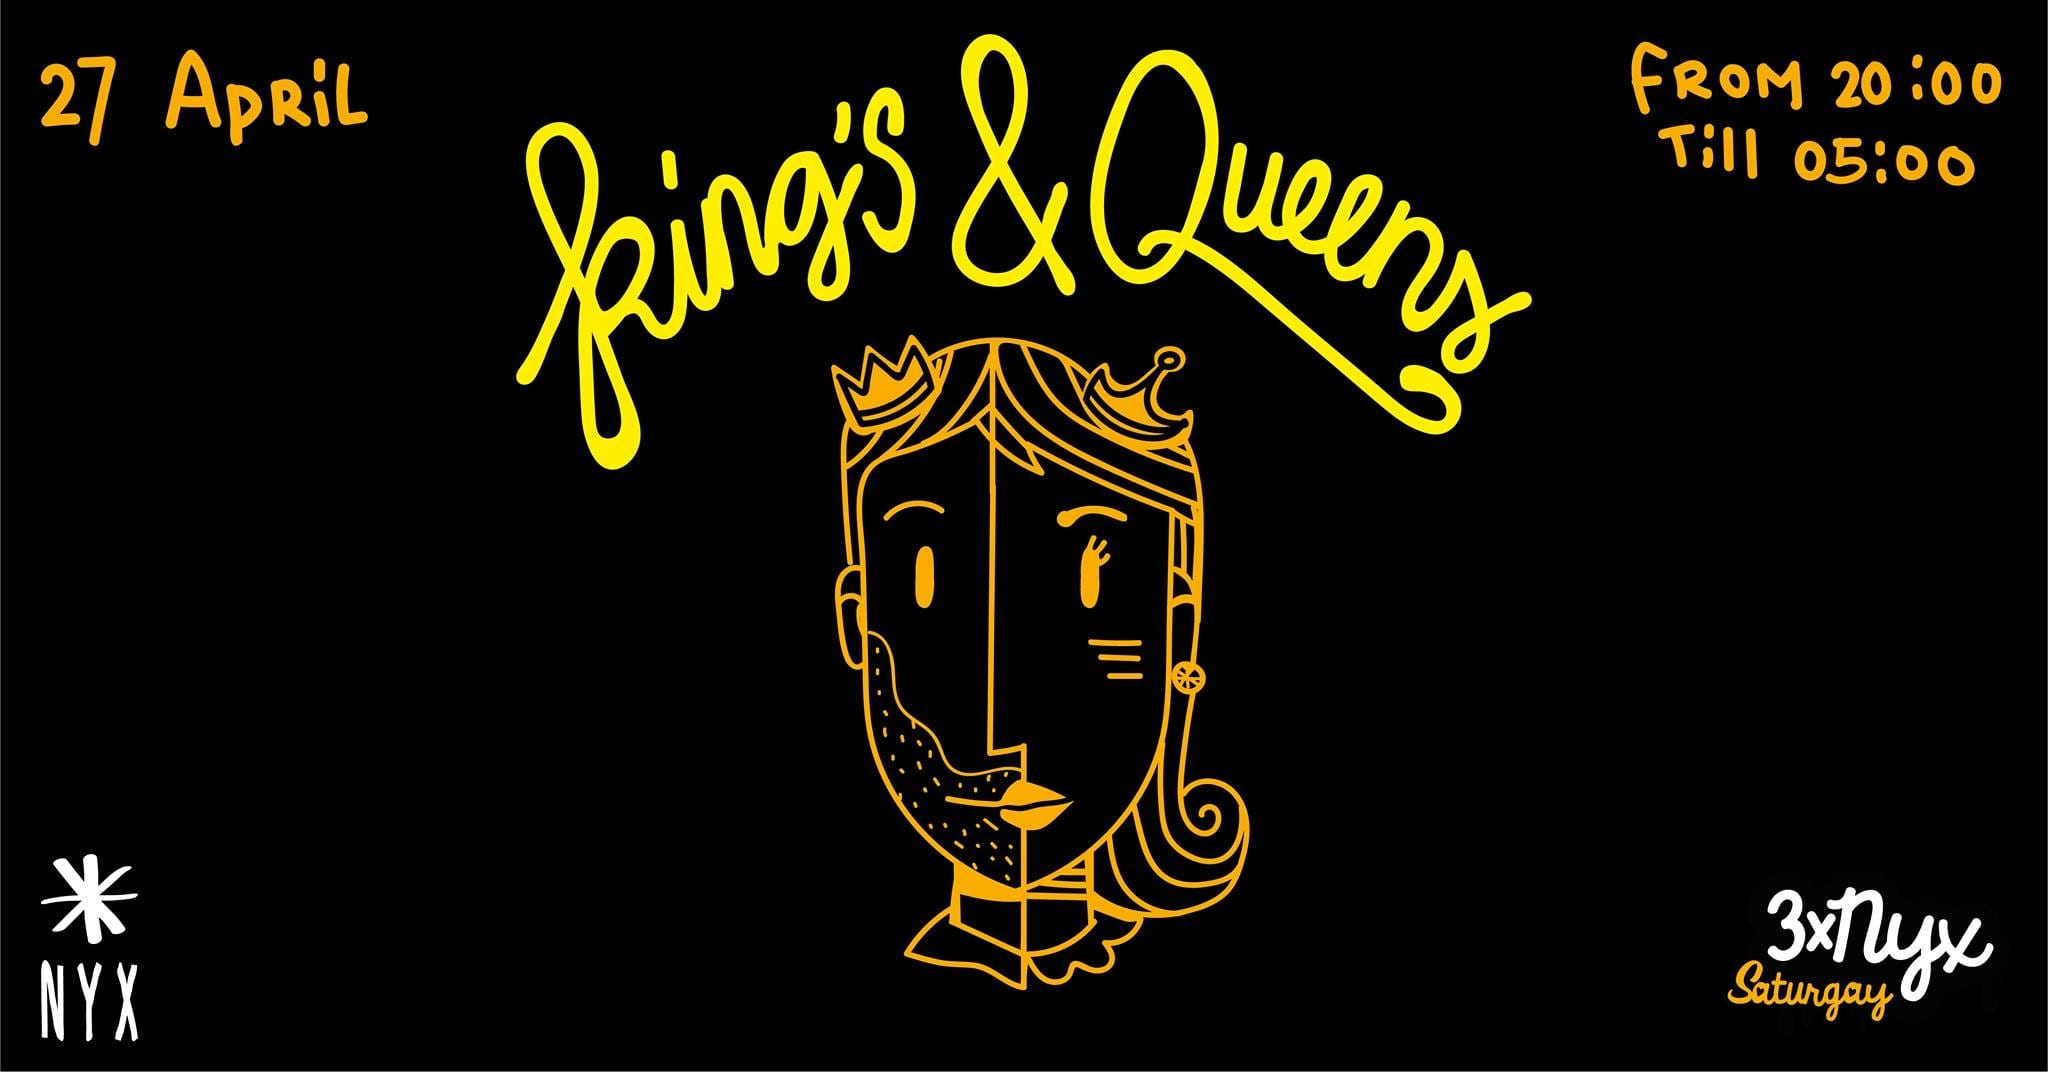 3x NYX presents Kings & Queens (Kingsday) Gay Dance Party Amsterdam